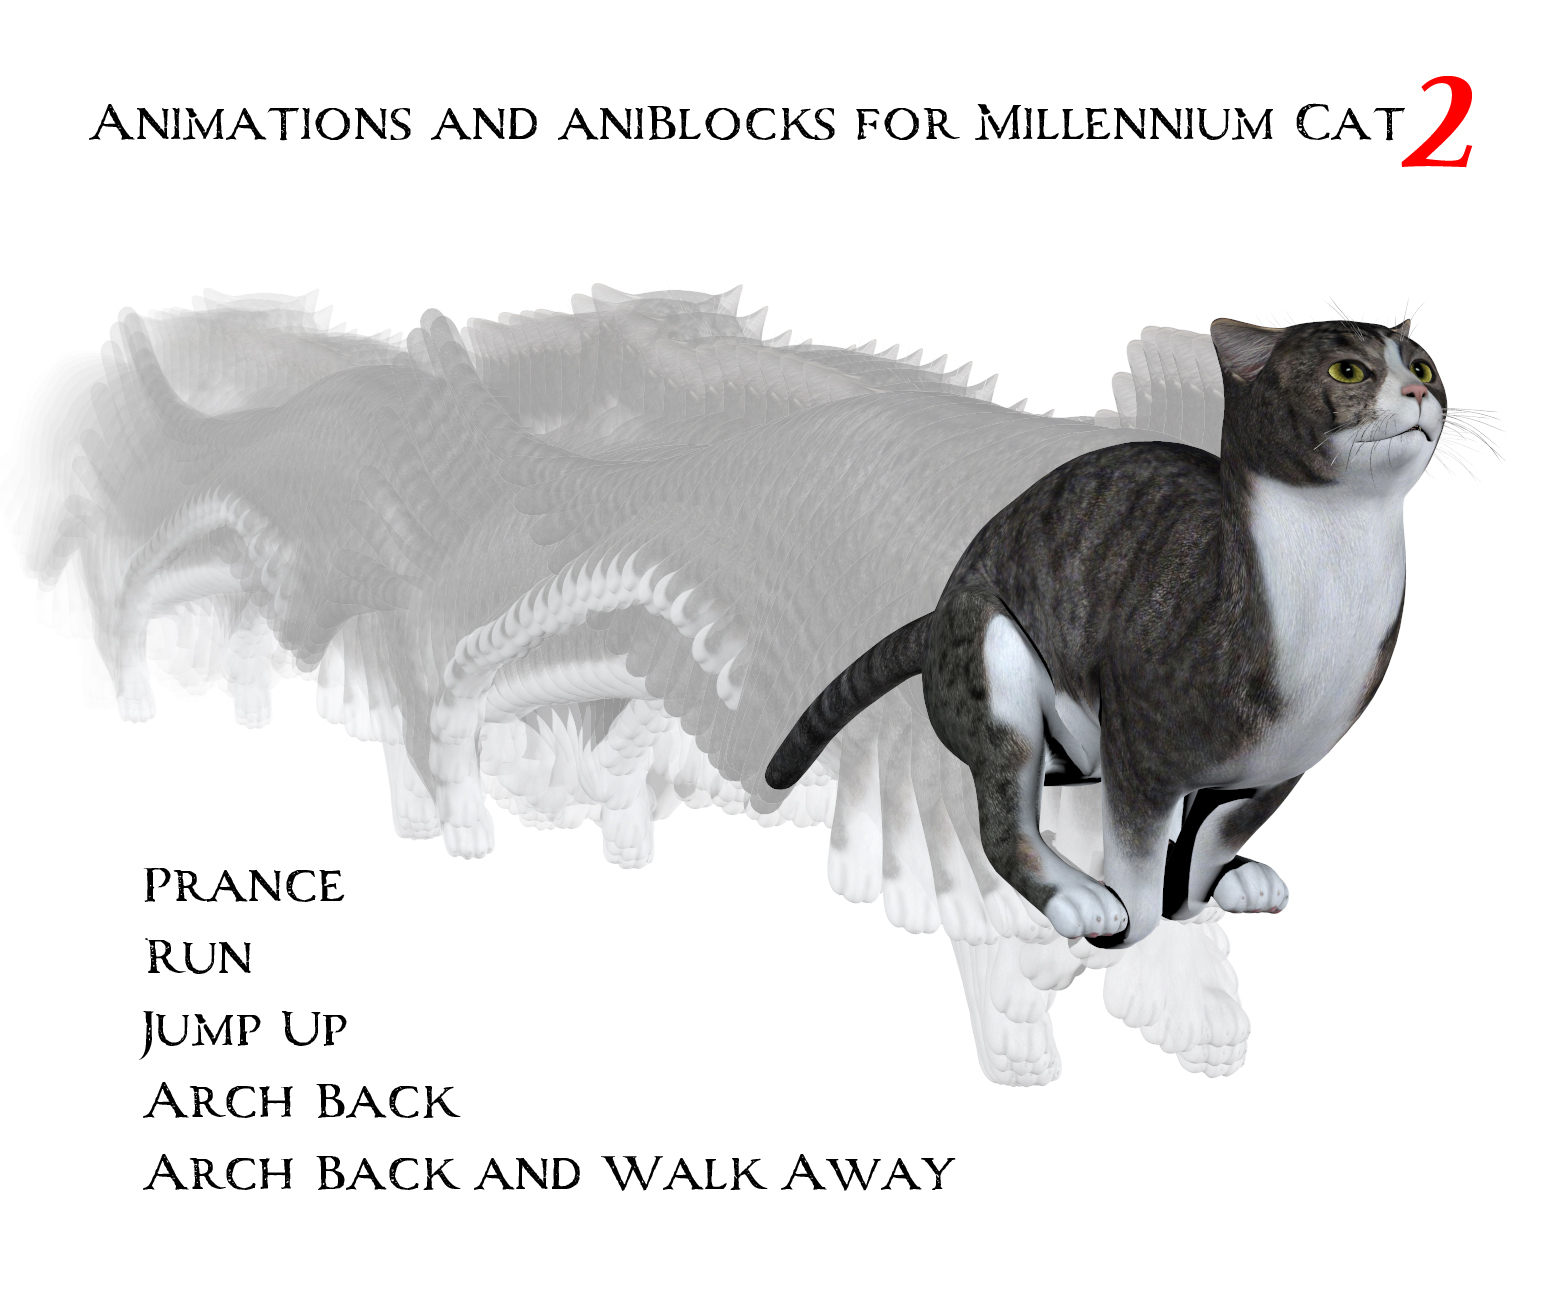 Animations and aniBlocks for Millennium Cat 2 by anniemation